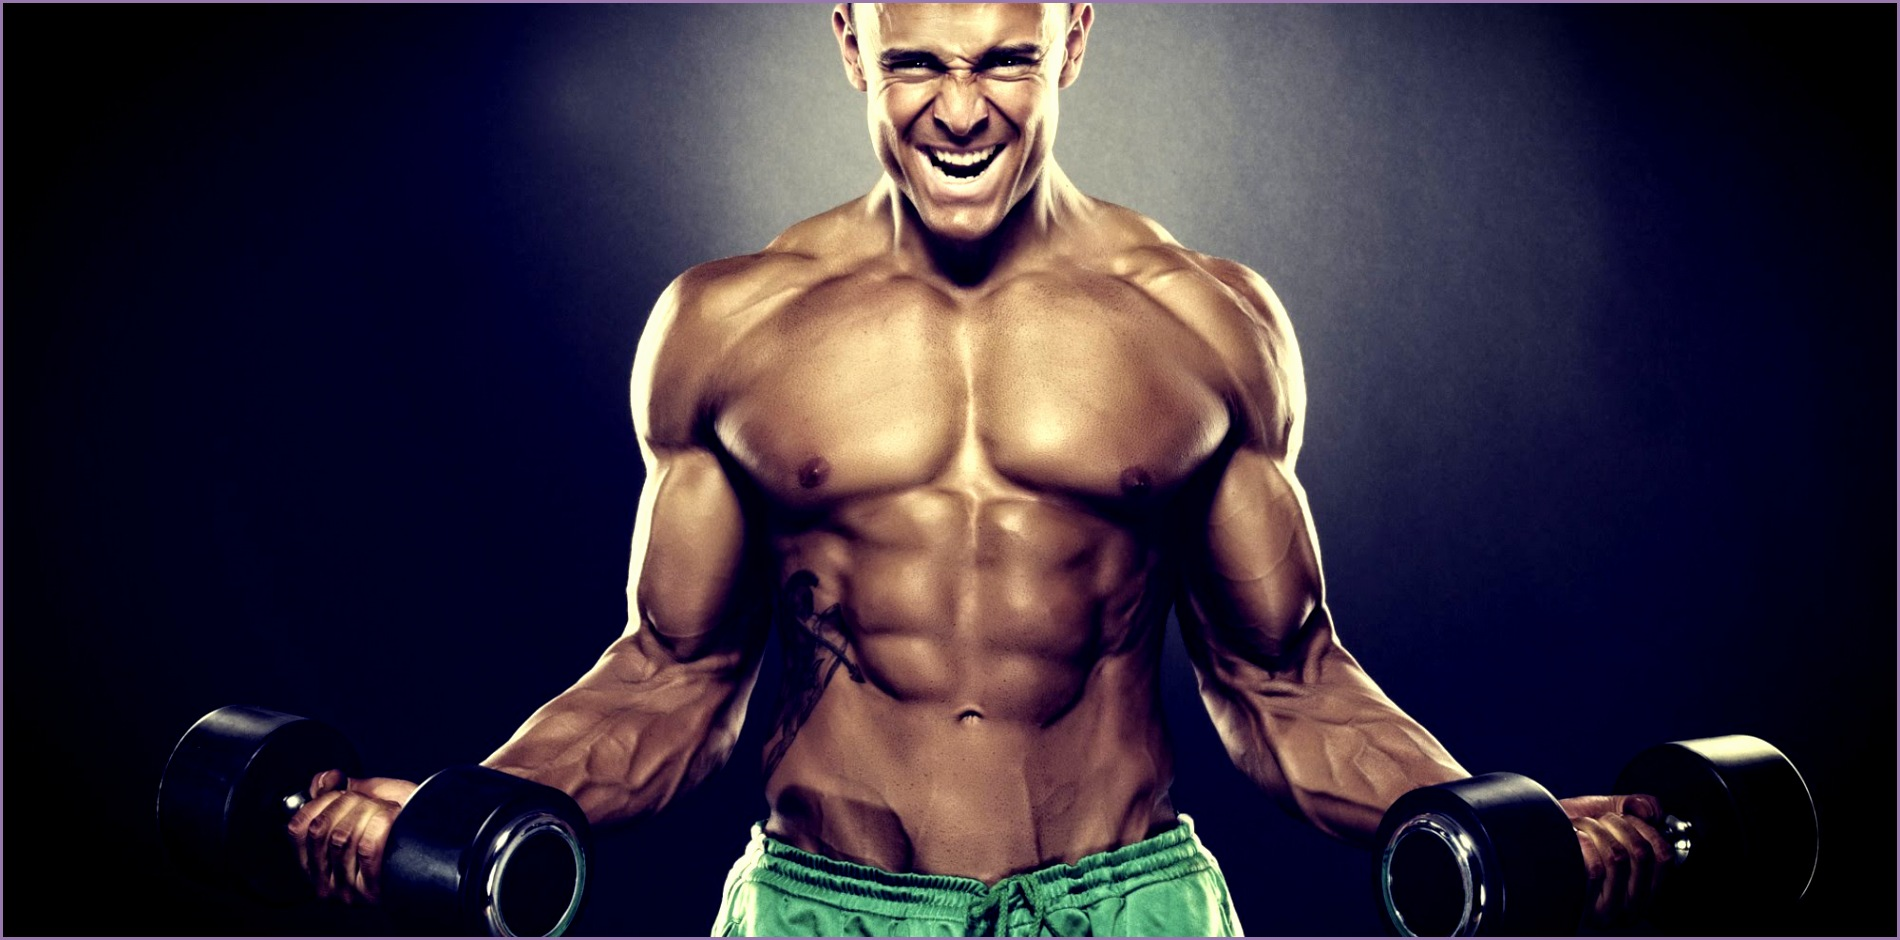 Men fitness motivation Muscular men